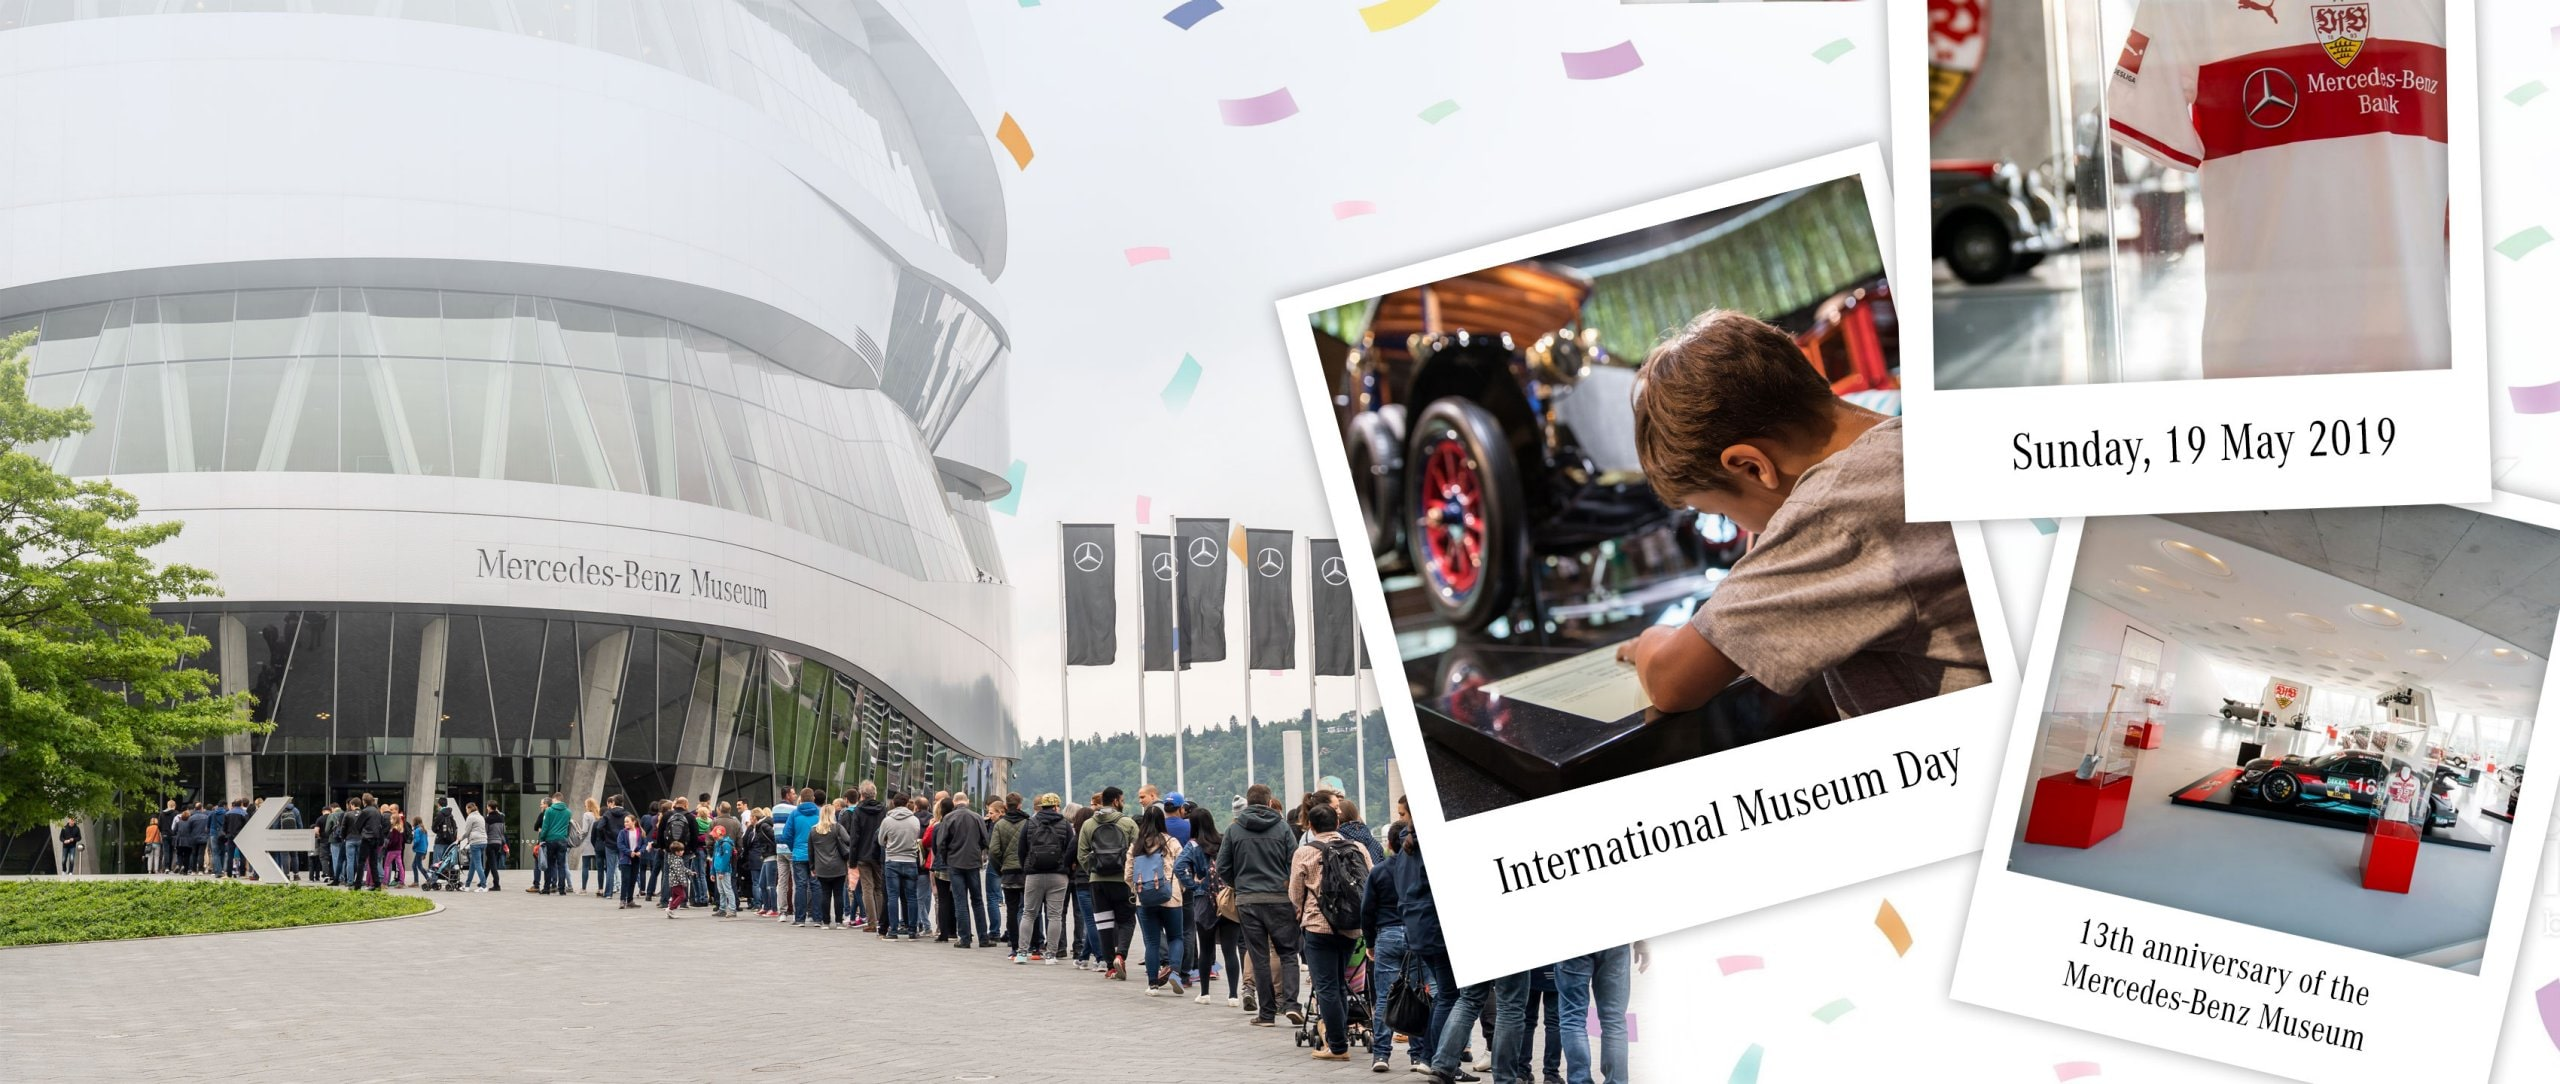 The 19th of May 2019 is International Museum Day and also the 13th anniversary of the Mercedes-Benz Museum.